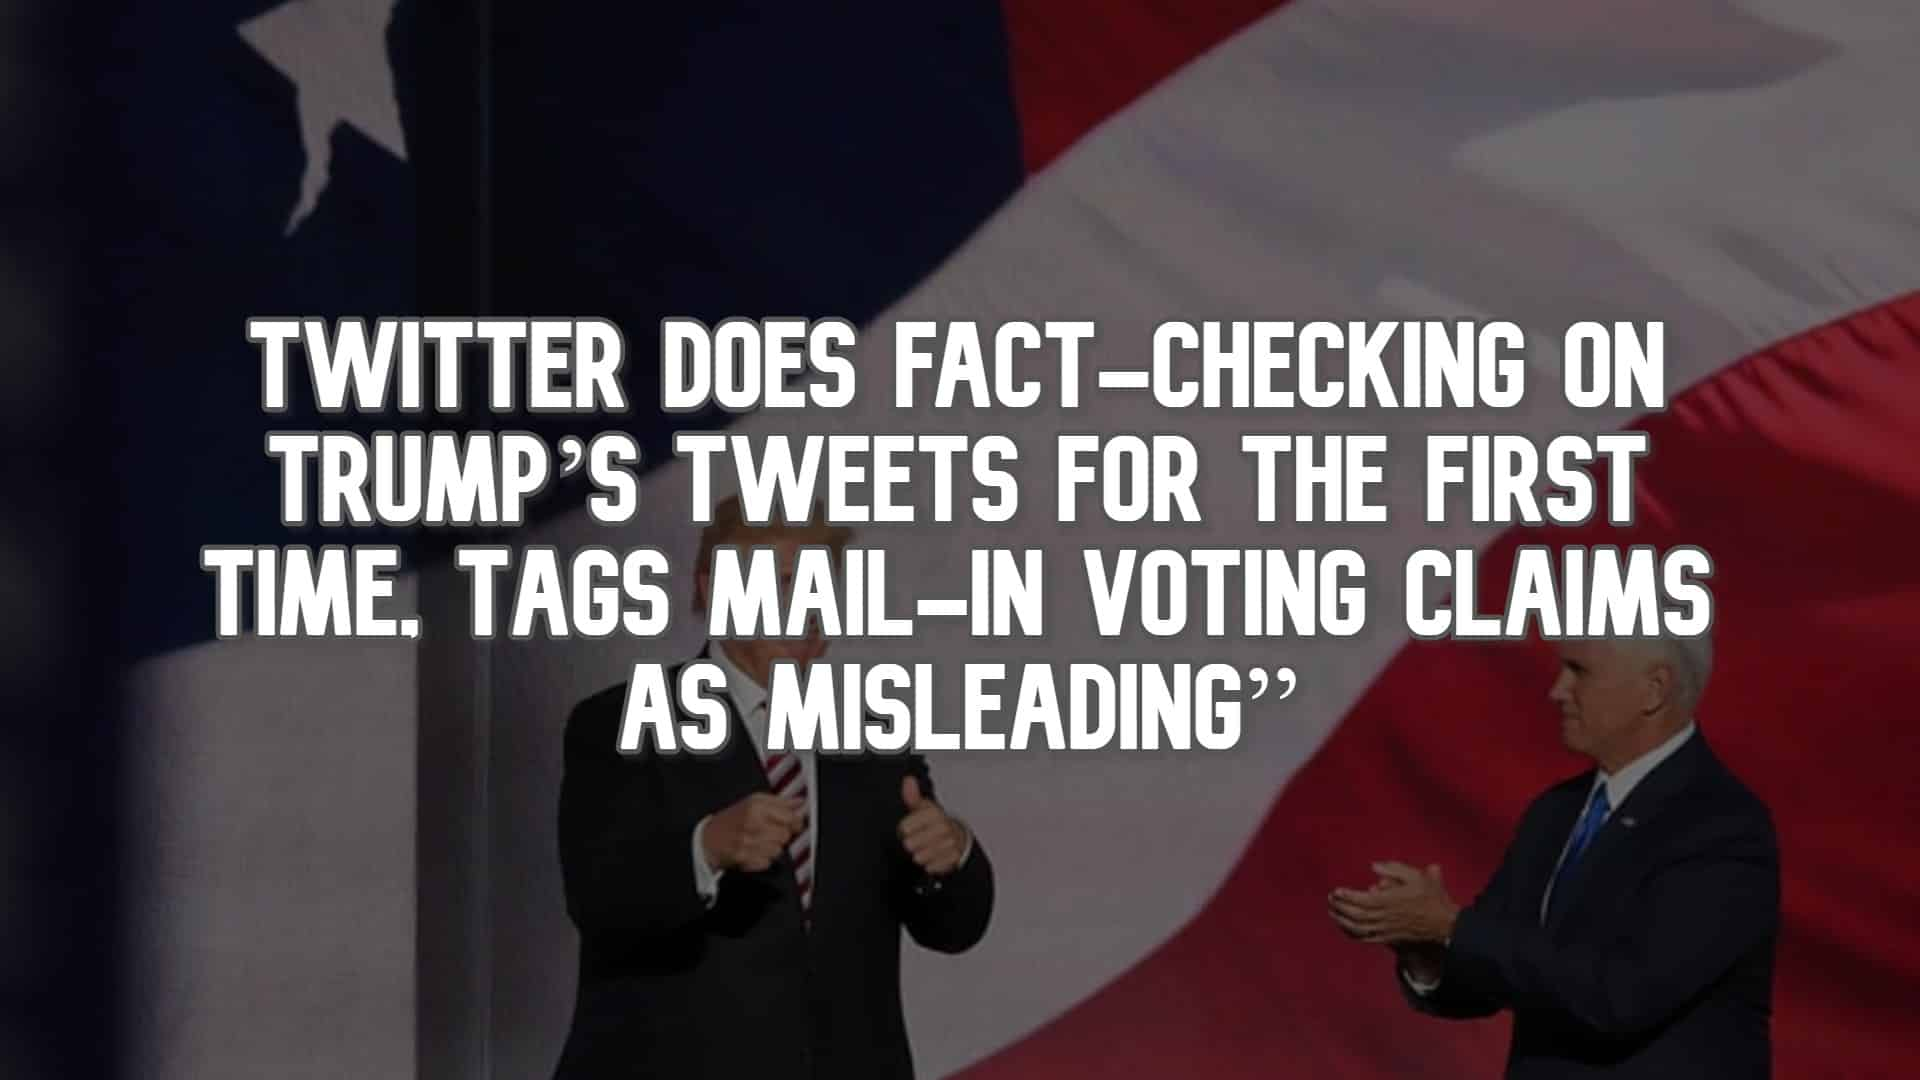 """Twitter Does Fact-Checking on Trump's Tweets for the First Time, Tags Mail-In Voting Claims as Misleading"""""""